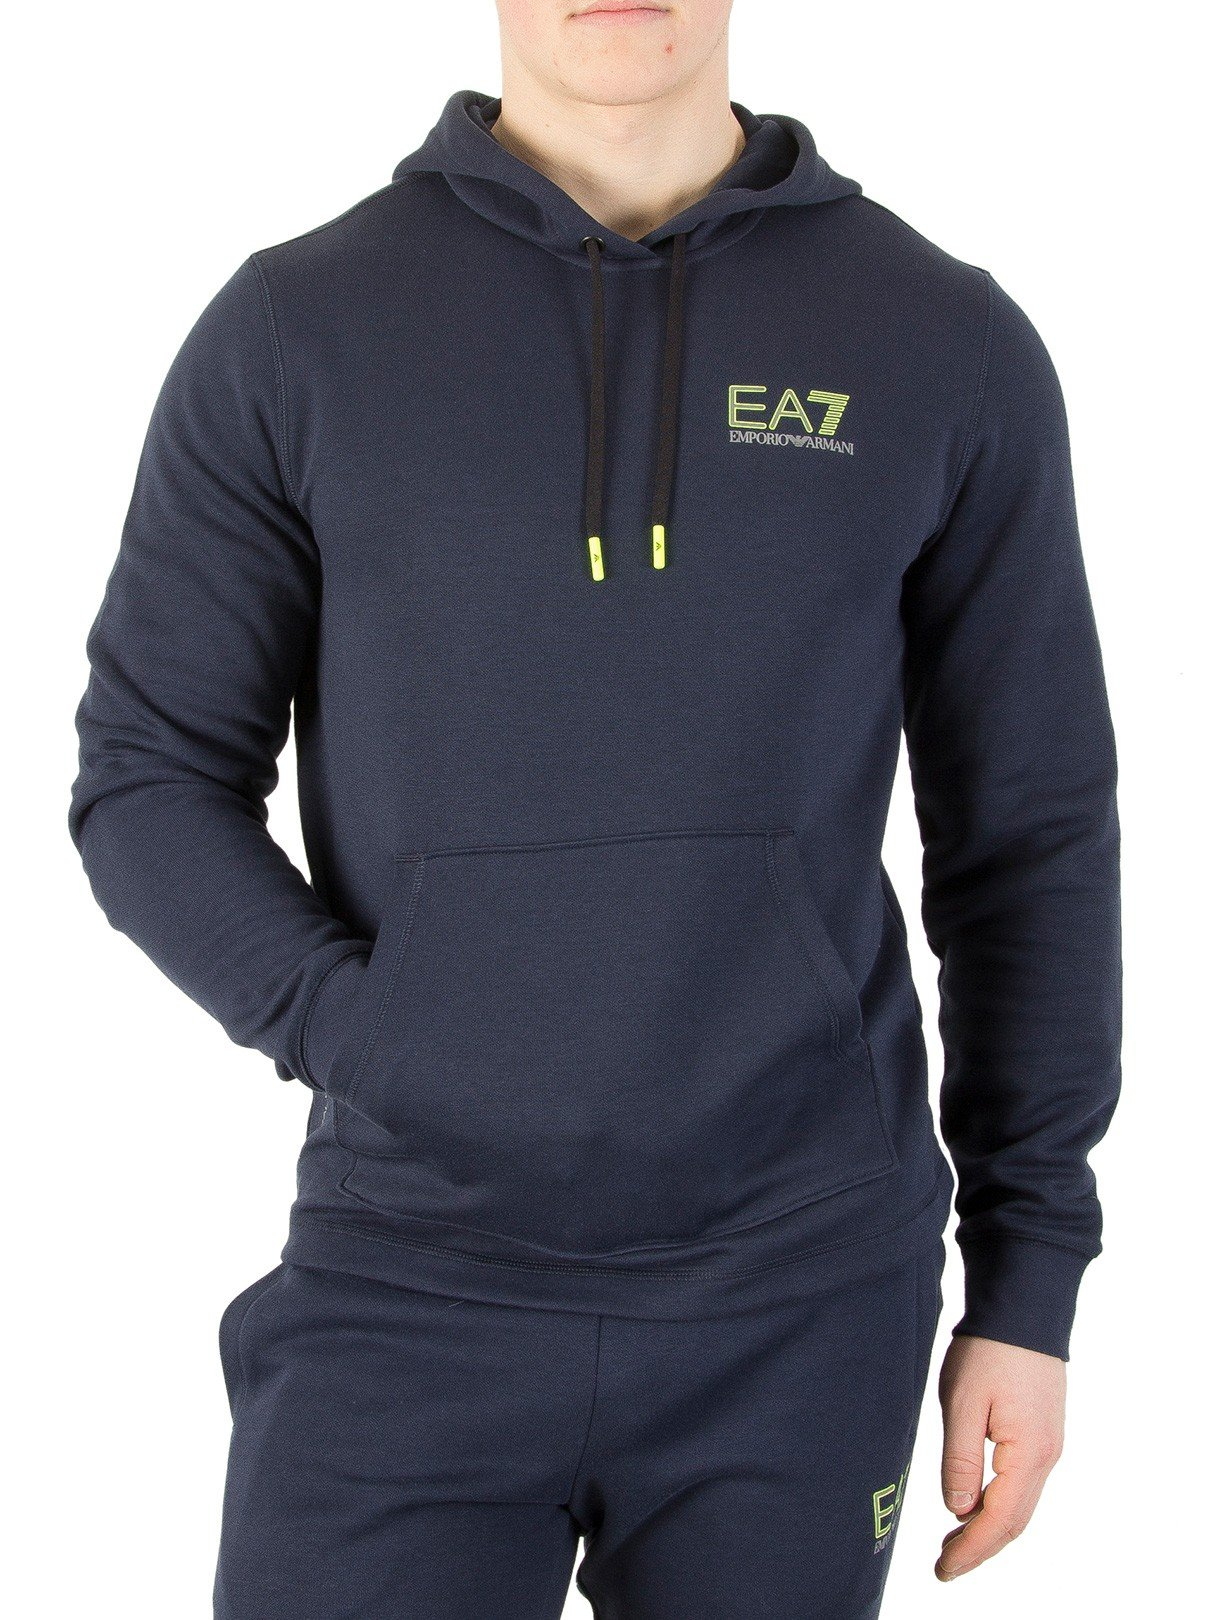 EA7 Men's Natural Ventus Pullover Hoodie, Blue, Large